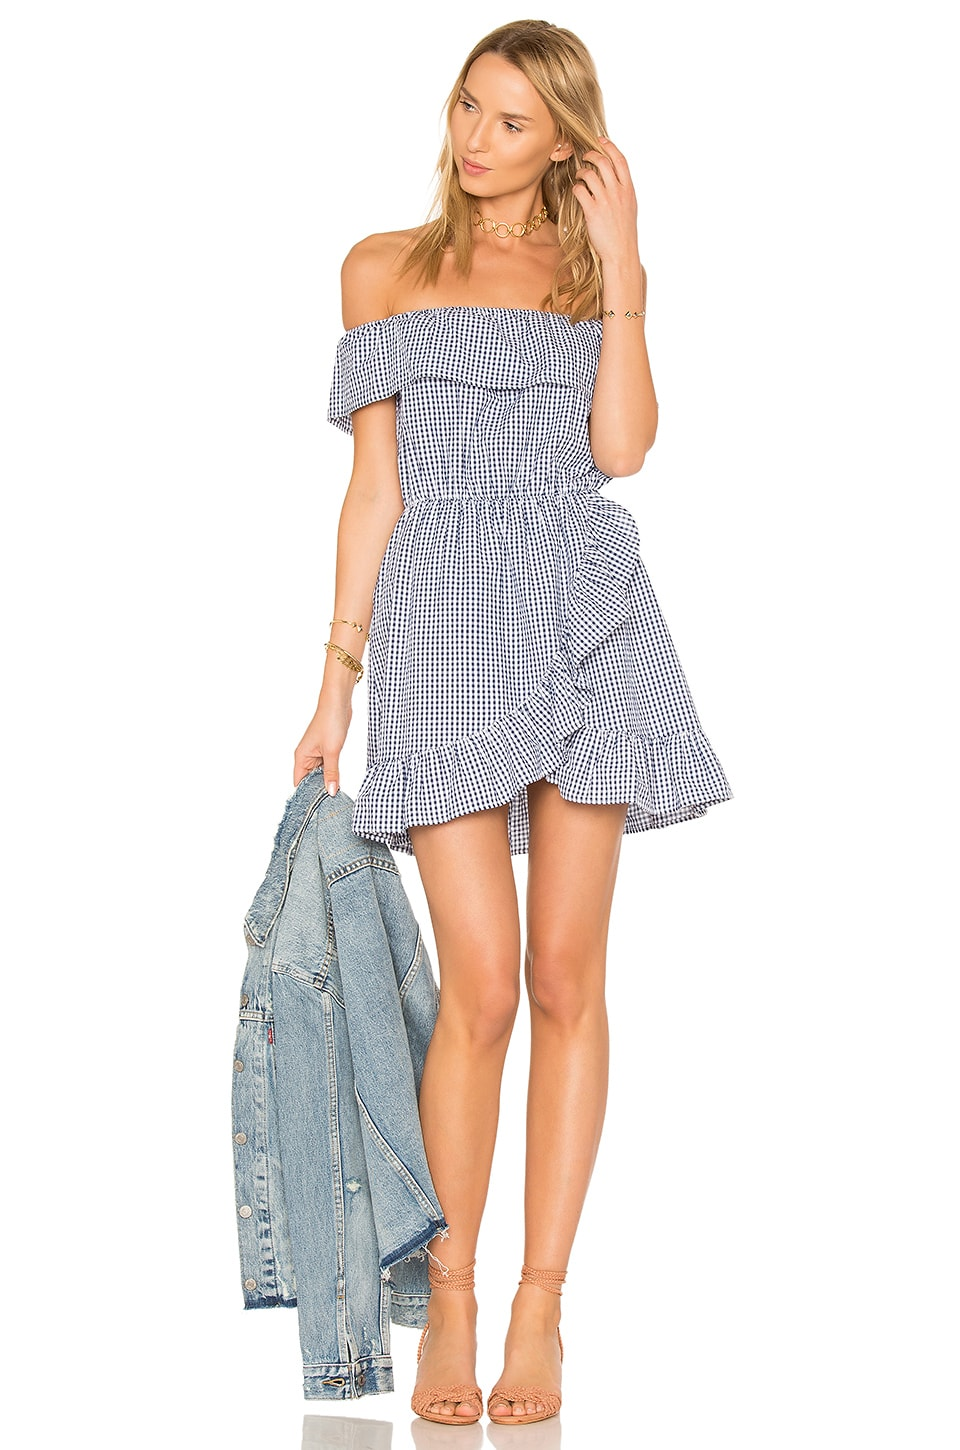 Lovers + Friends x REVOLVE Dazzling Mini in Mini Gingham